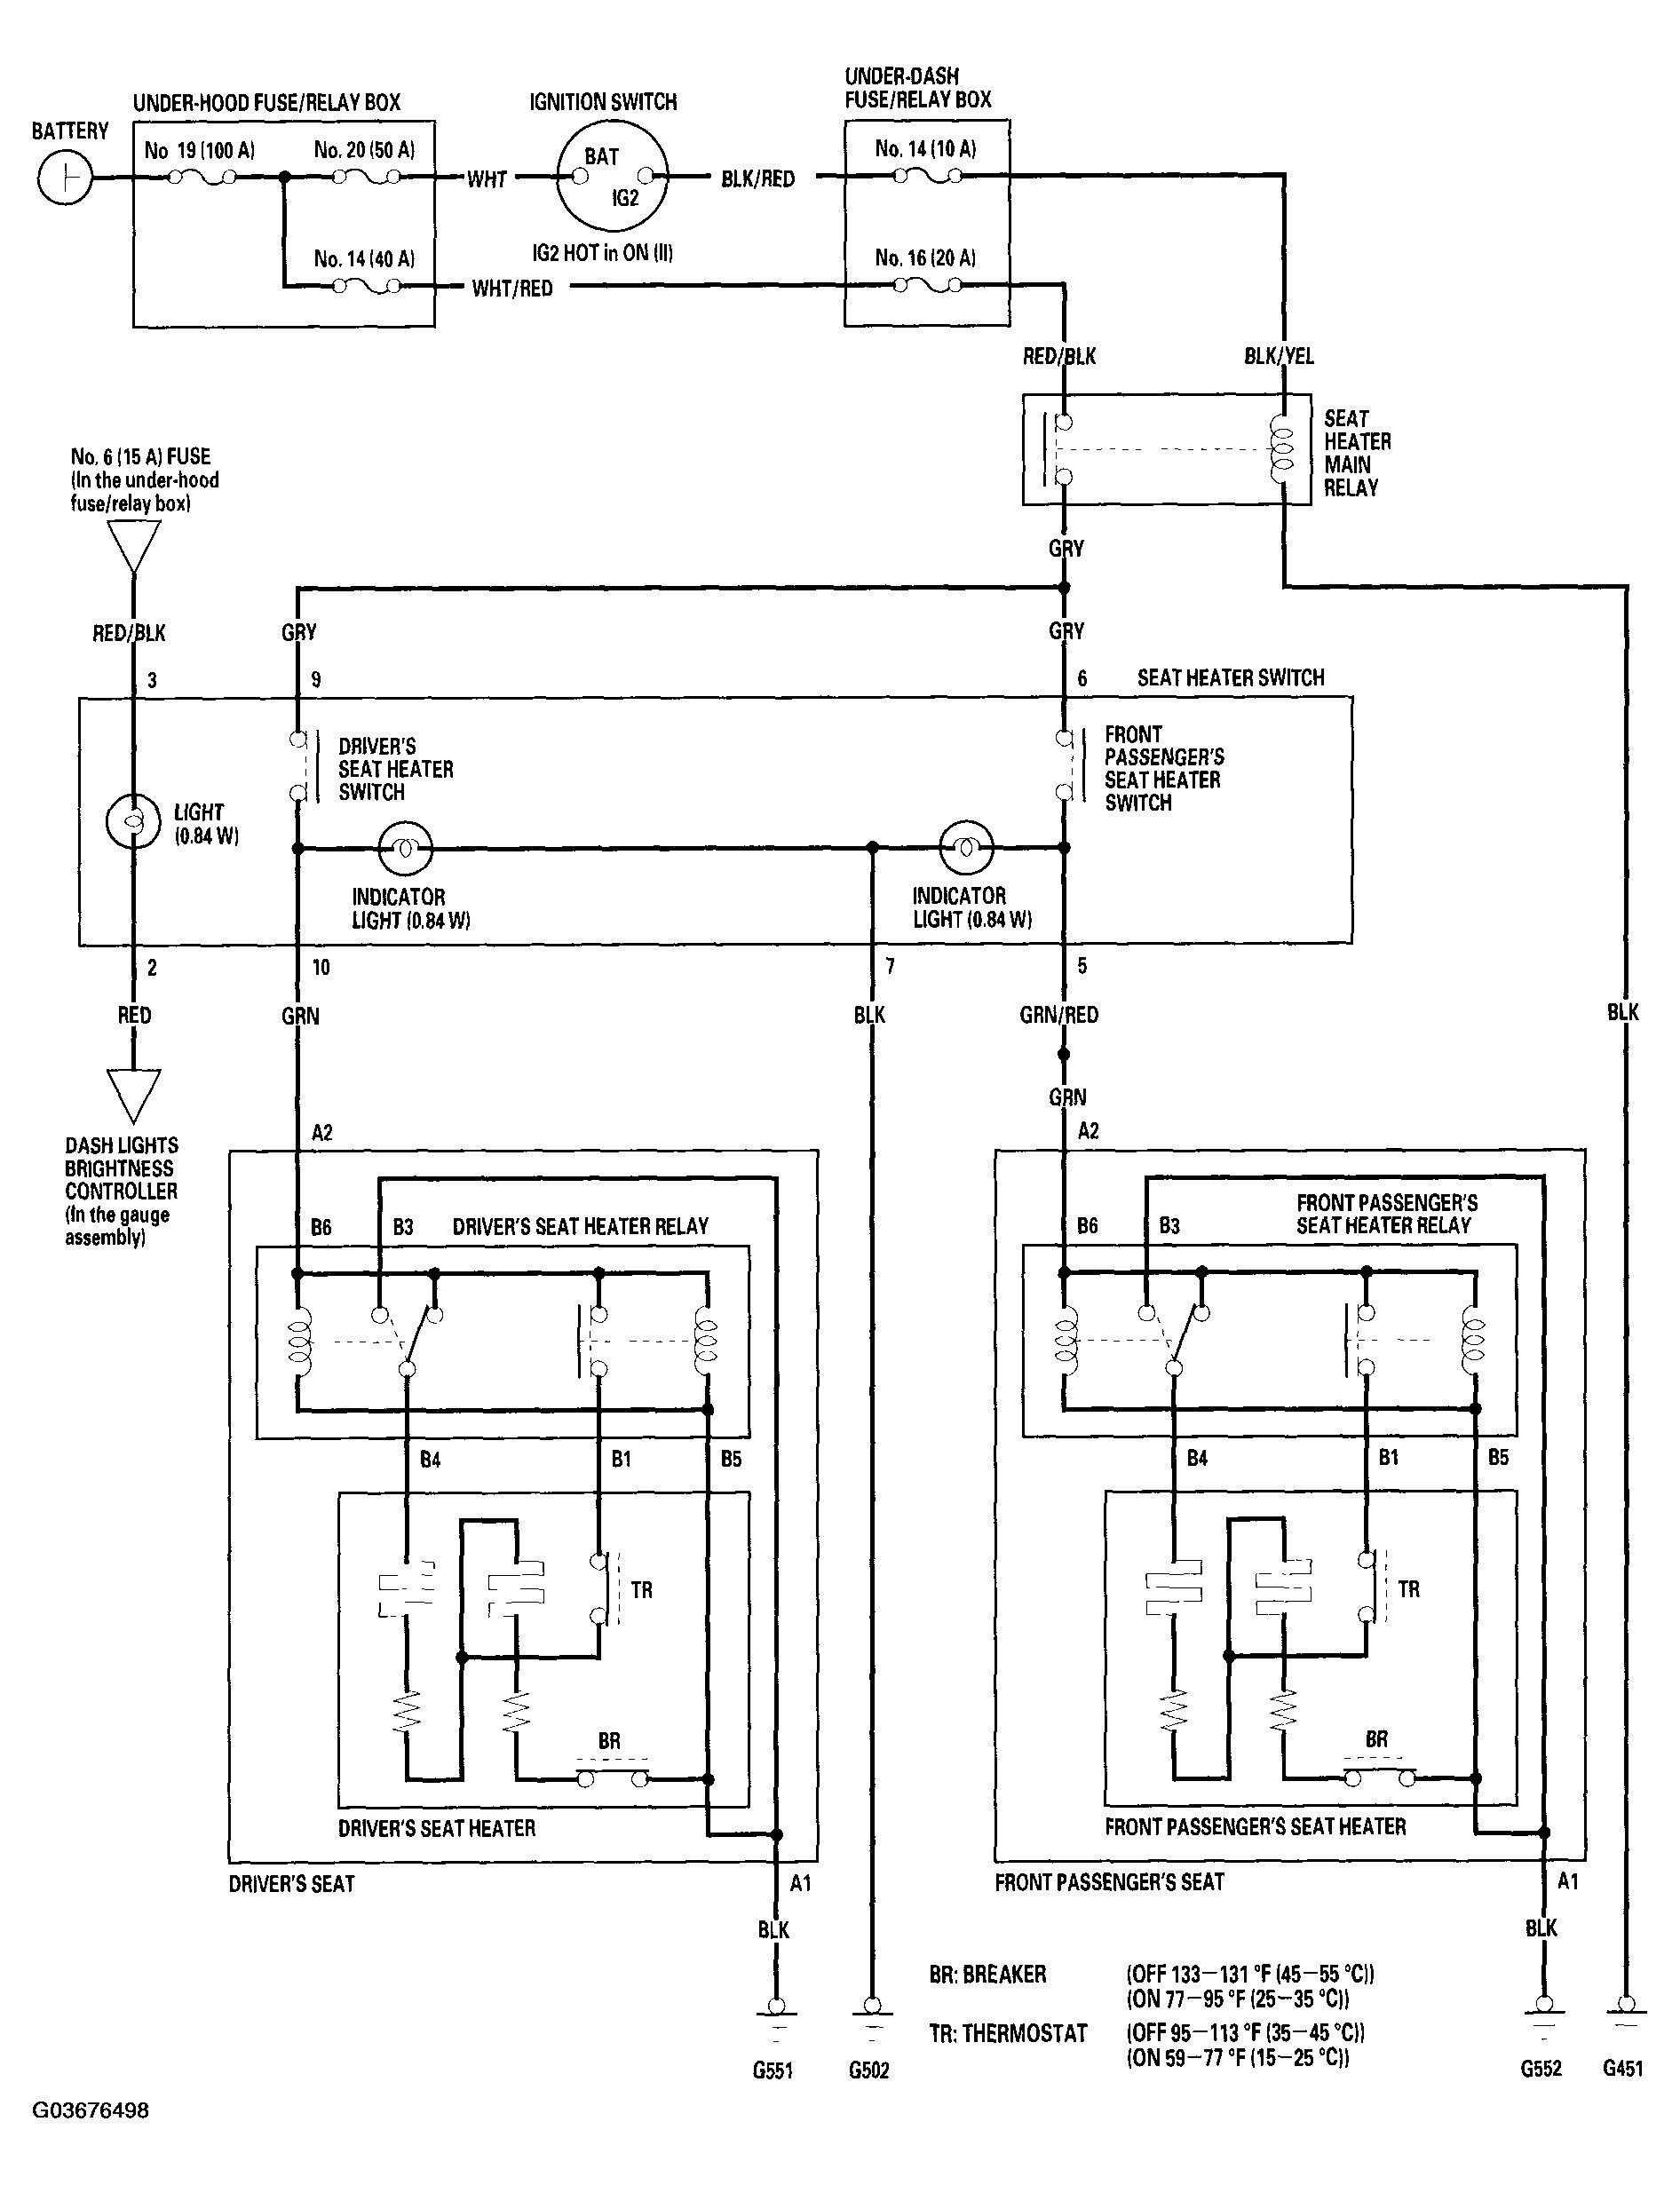 20 Auto Car Wiring Diagram Software References | Electrical circuit diagram,  Electrical diagram, Digital circuitPinterest